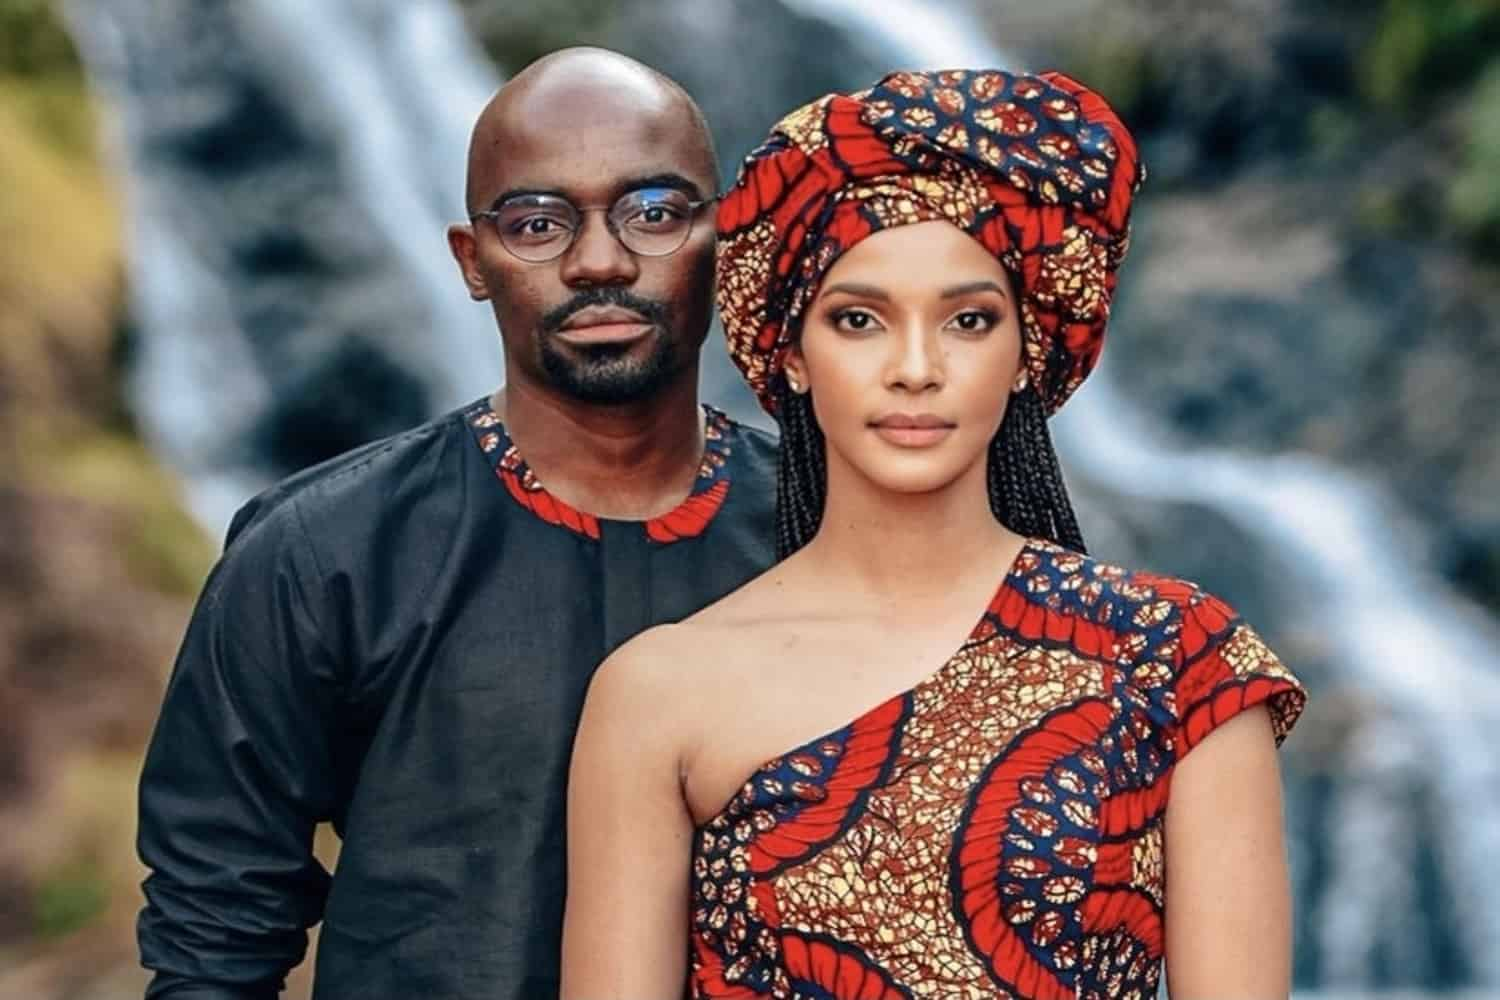 Dr Musa Mthombeni Claps Back At Haters